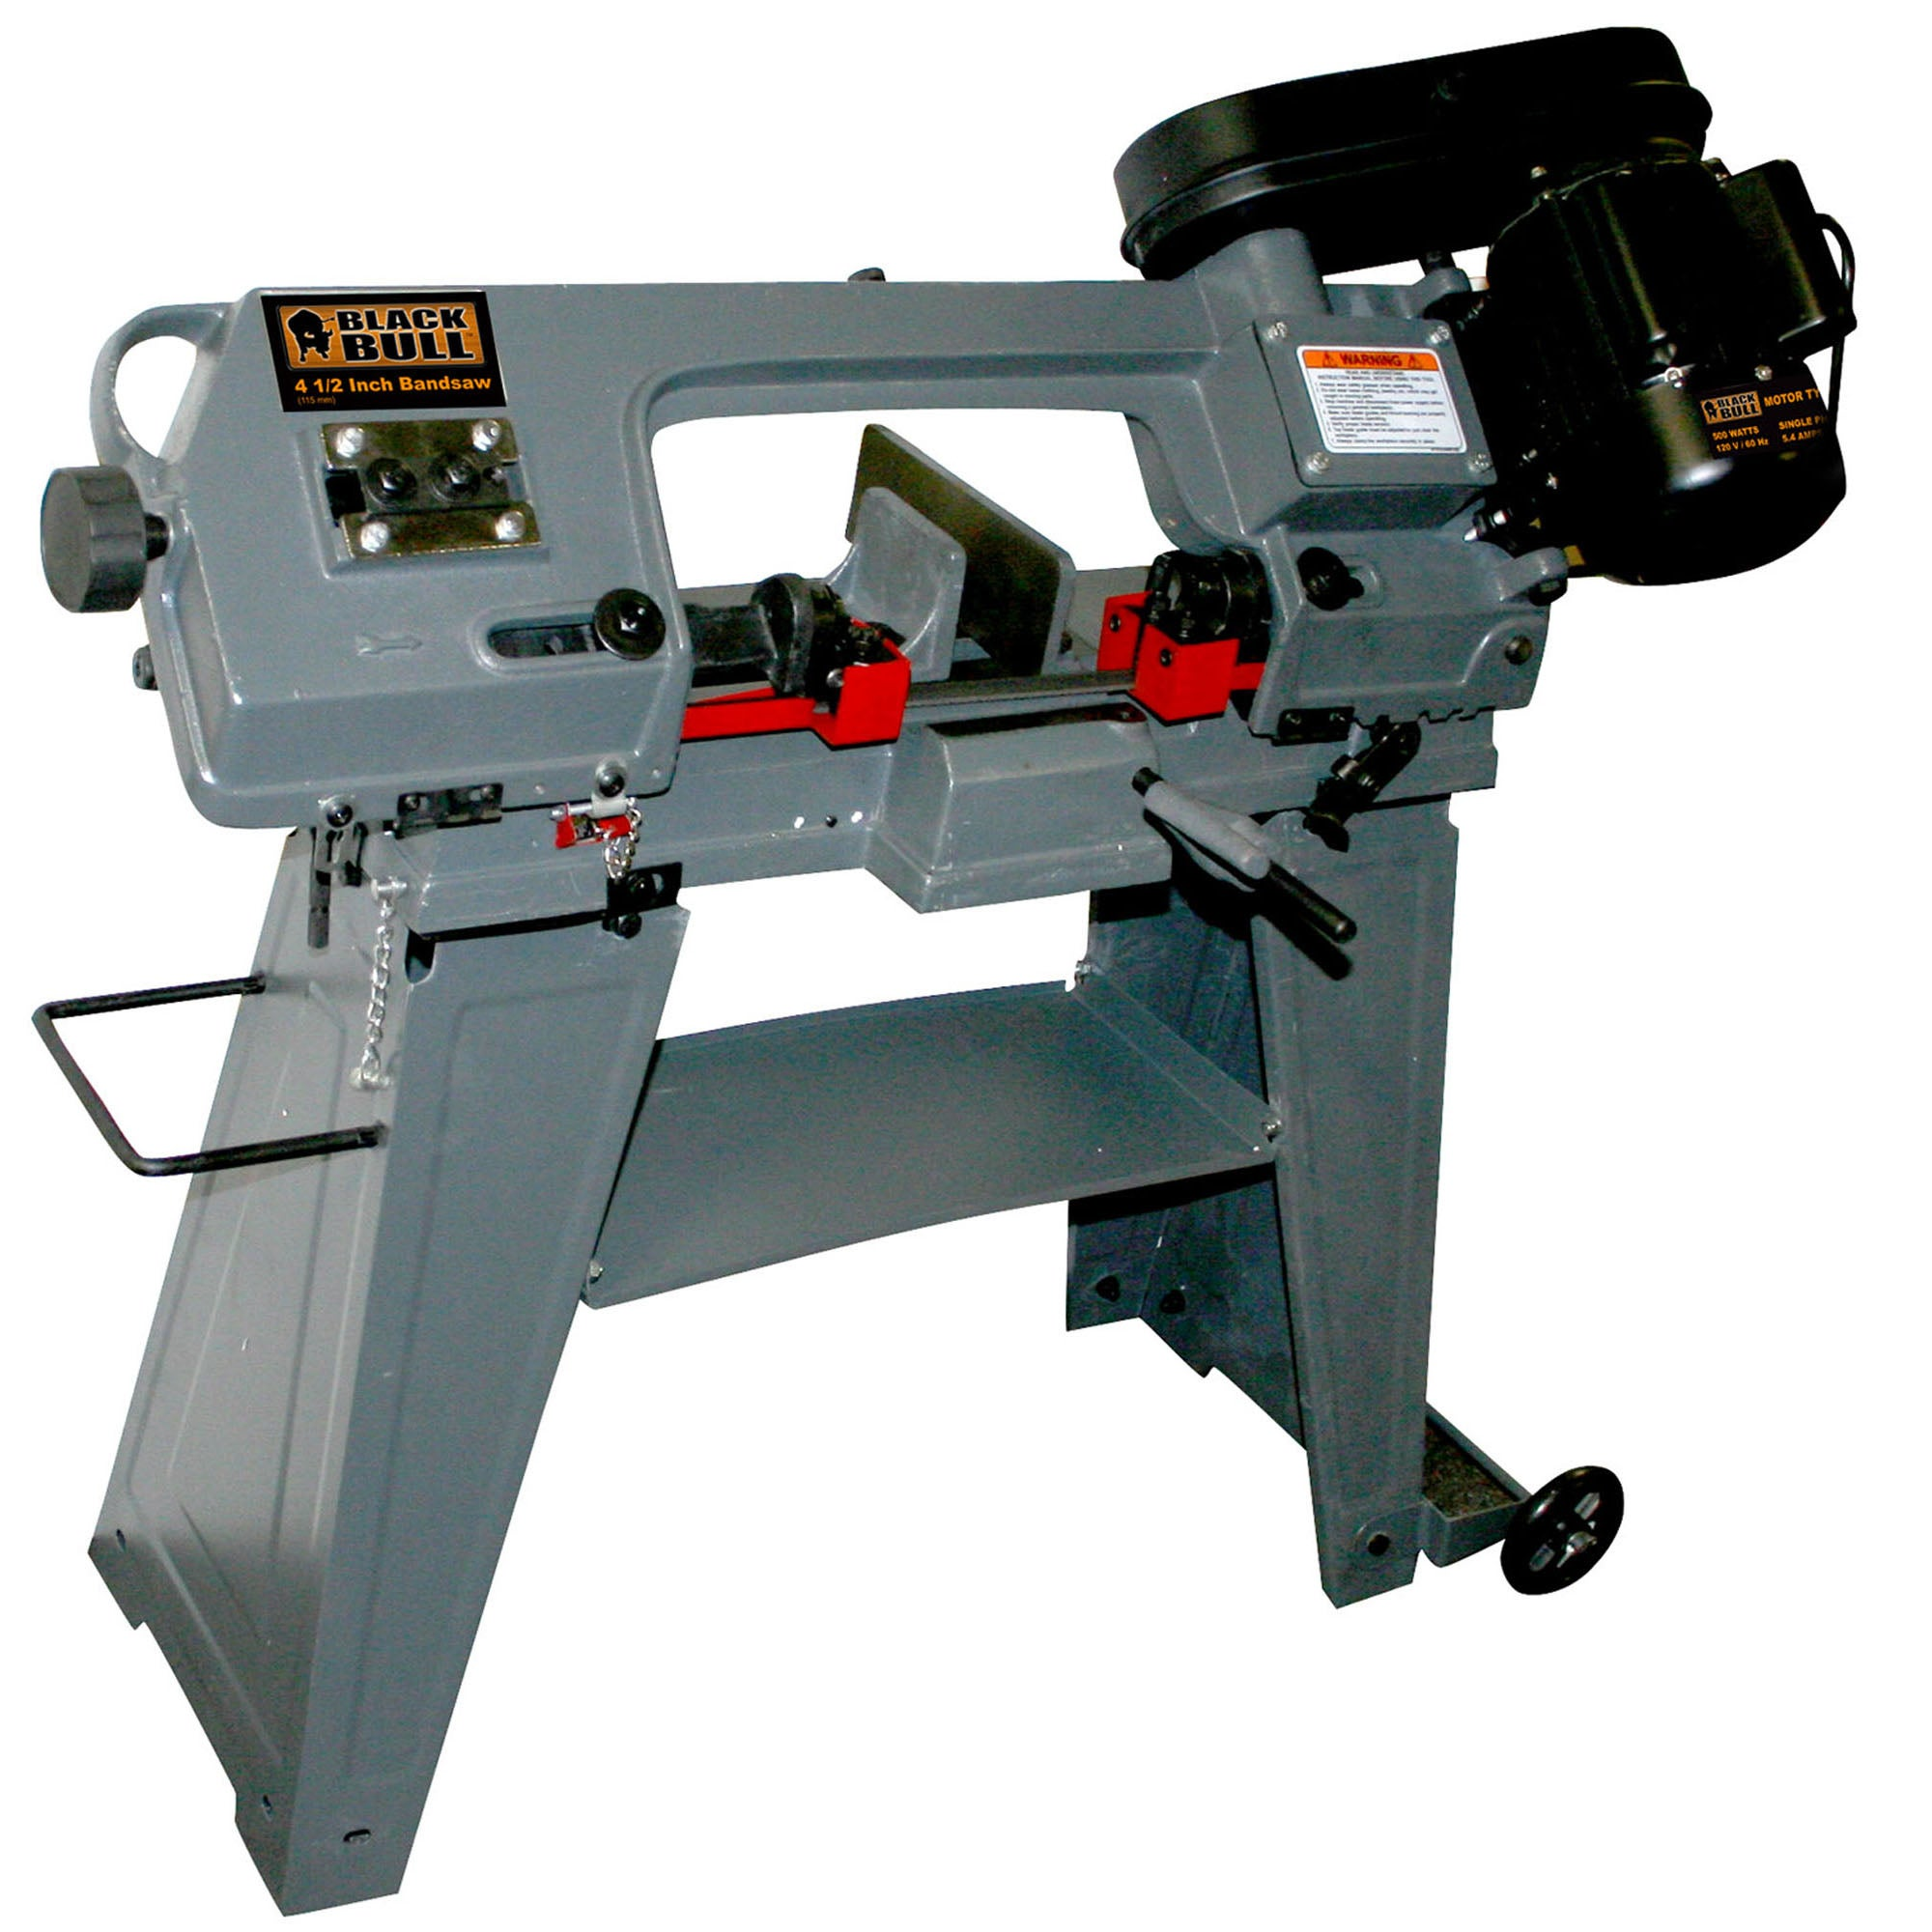 Buffalo Tools Black Bull 4.5-inch Metal Band Saw at Sears.com